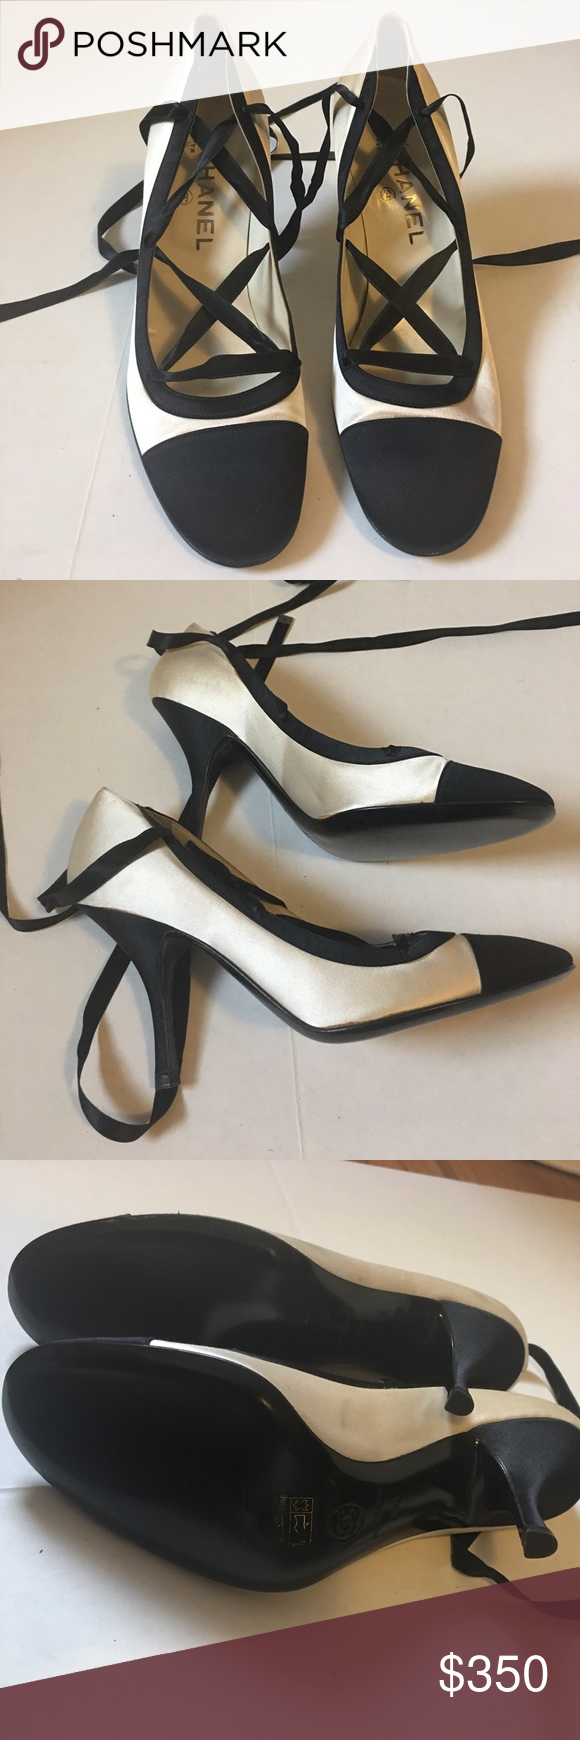 cd0645476b1c Authentic Chanel Satin Lace Up Heels 38.5 Chanel classic Size 38.5 Made in  Italy satin lace up heels. Never been worn. Slight discoloration on seams  of ...